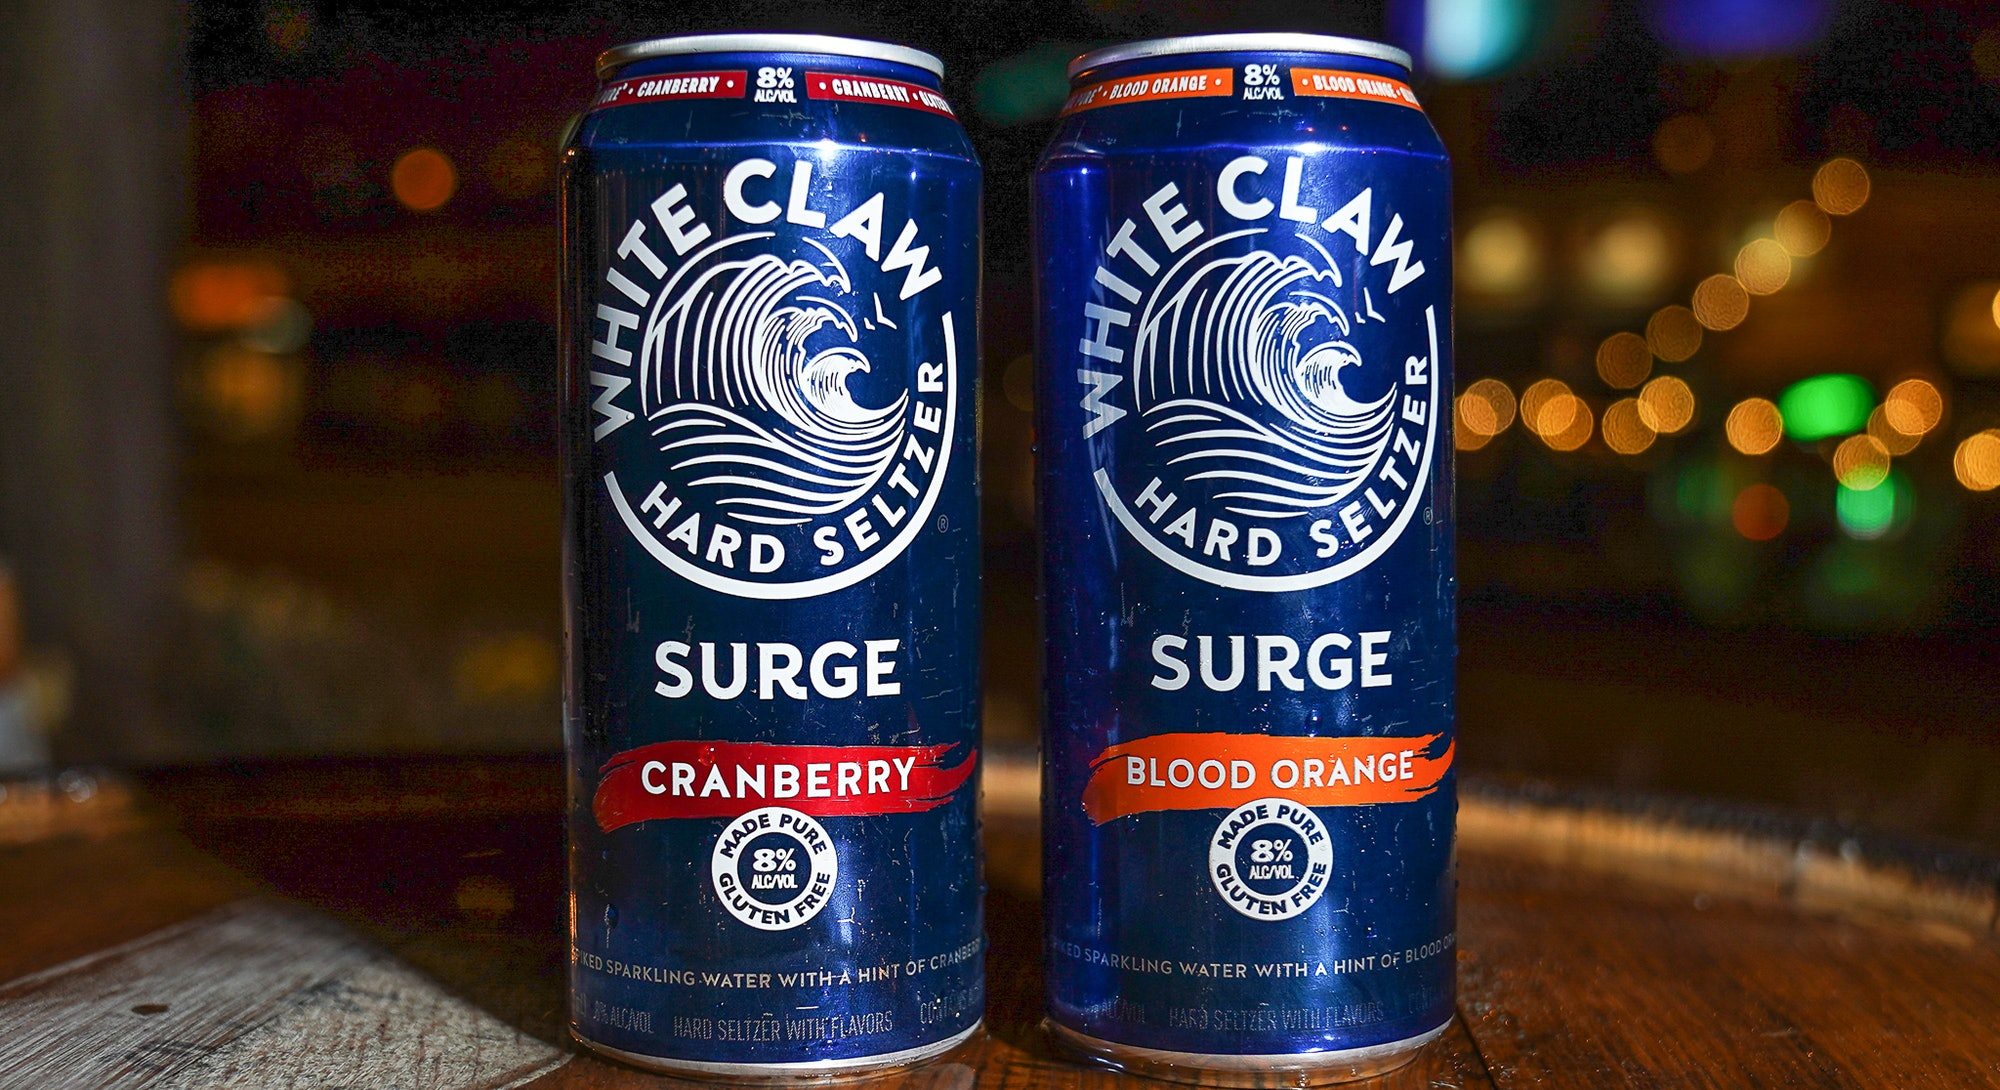 White Claw released a twist on the classic seltzer called White Claw Surge.